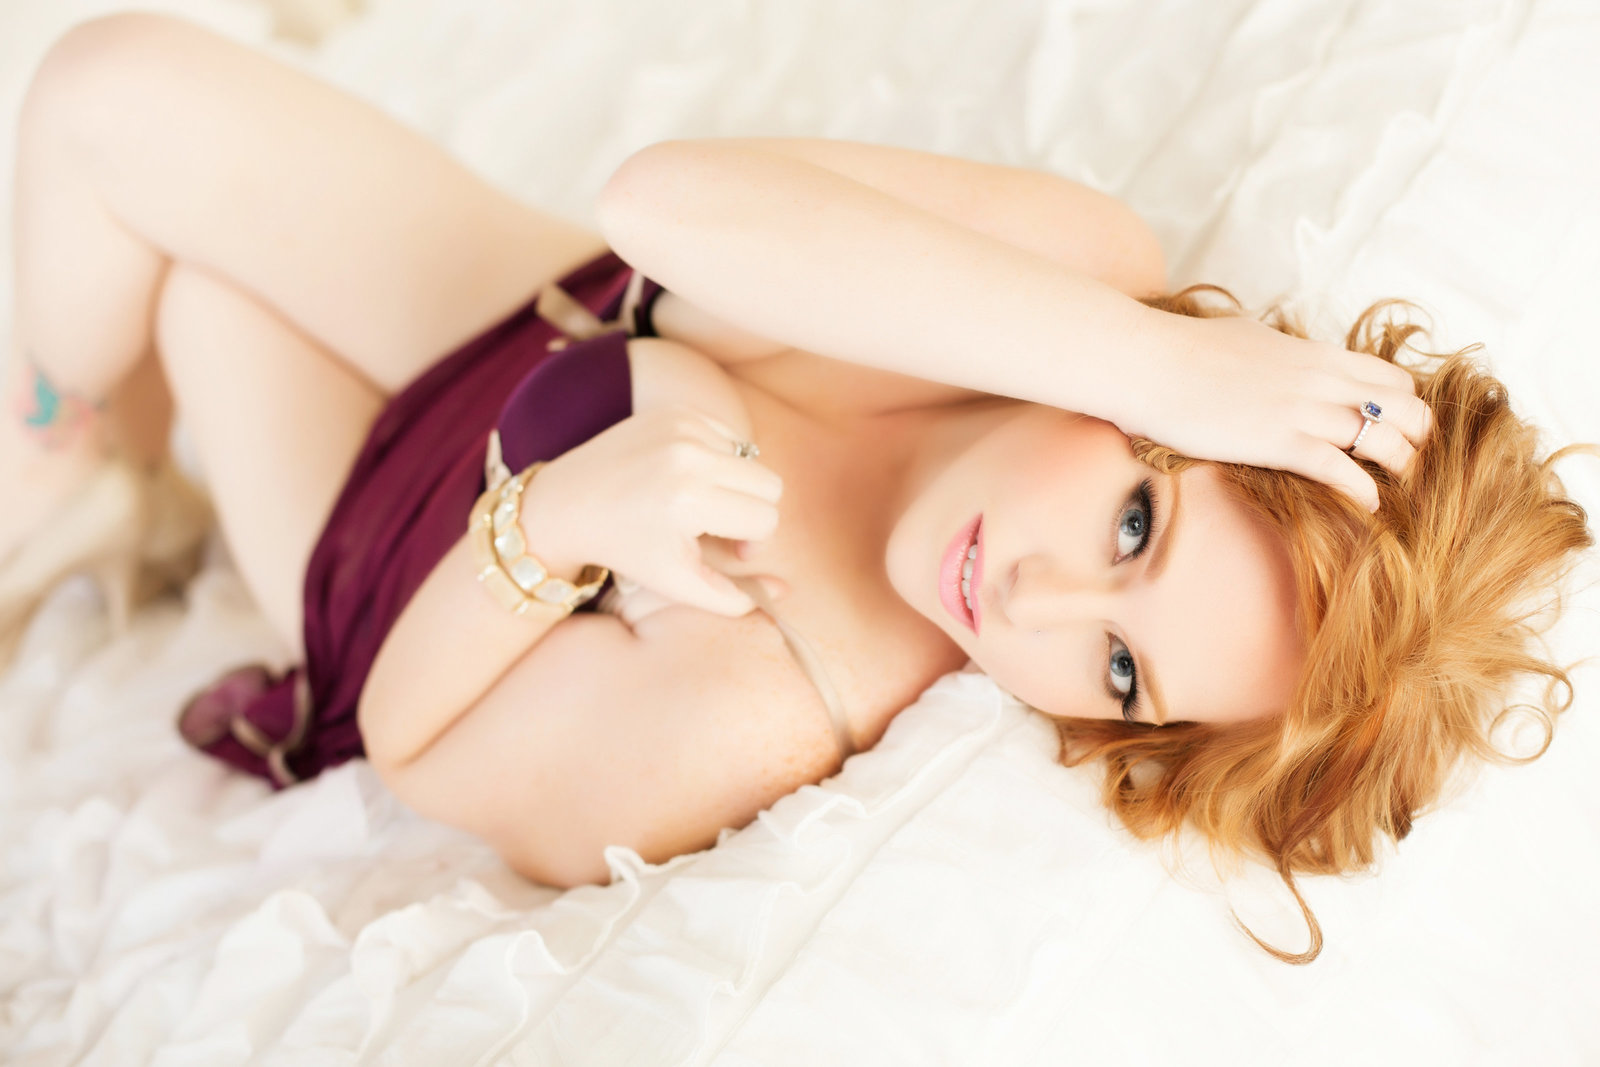 burgandy lingerie red hair boudoir, az photography